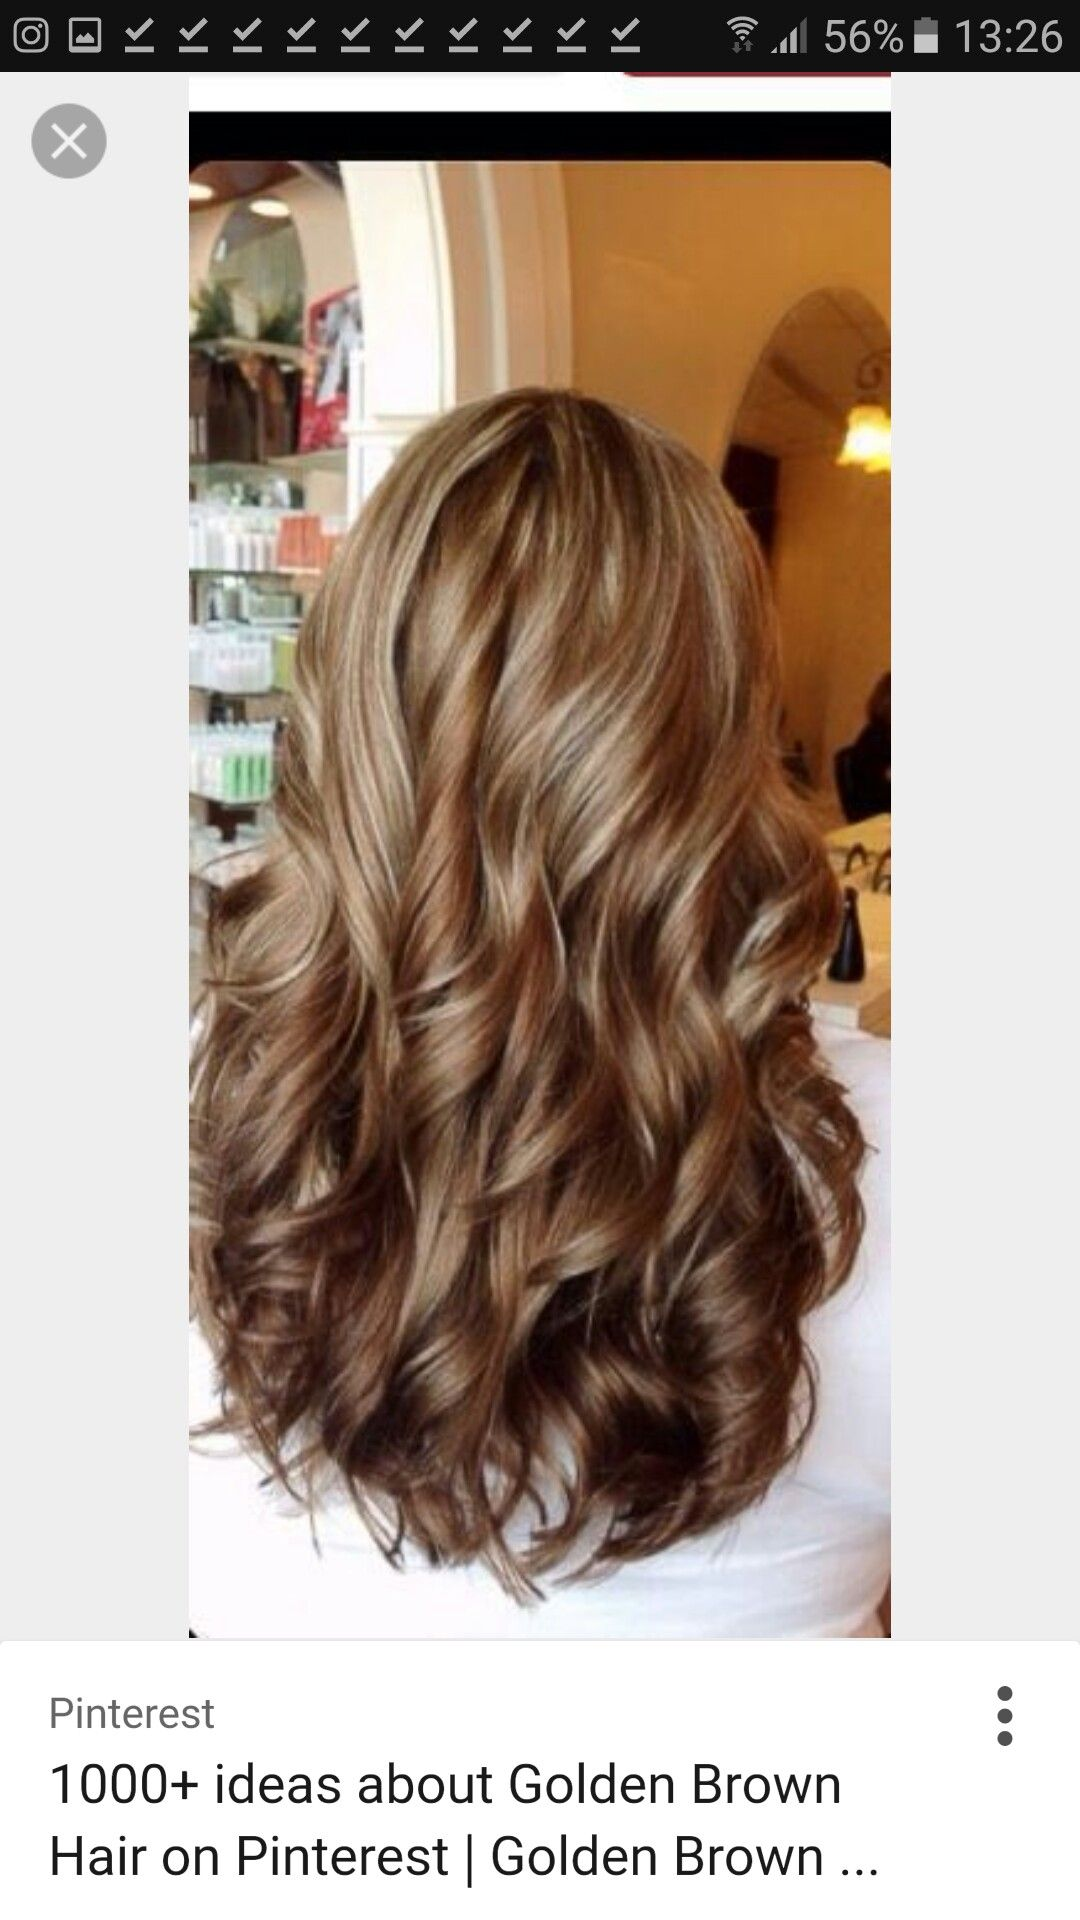 Pin by Ania MC on Hair Golden Brown&DarkBlonde Pinterest